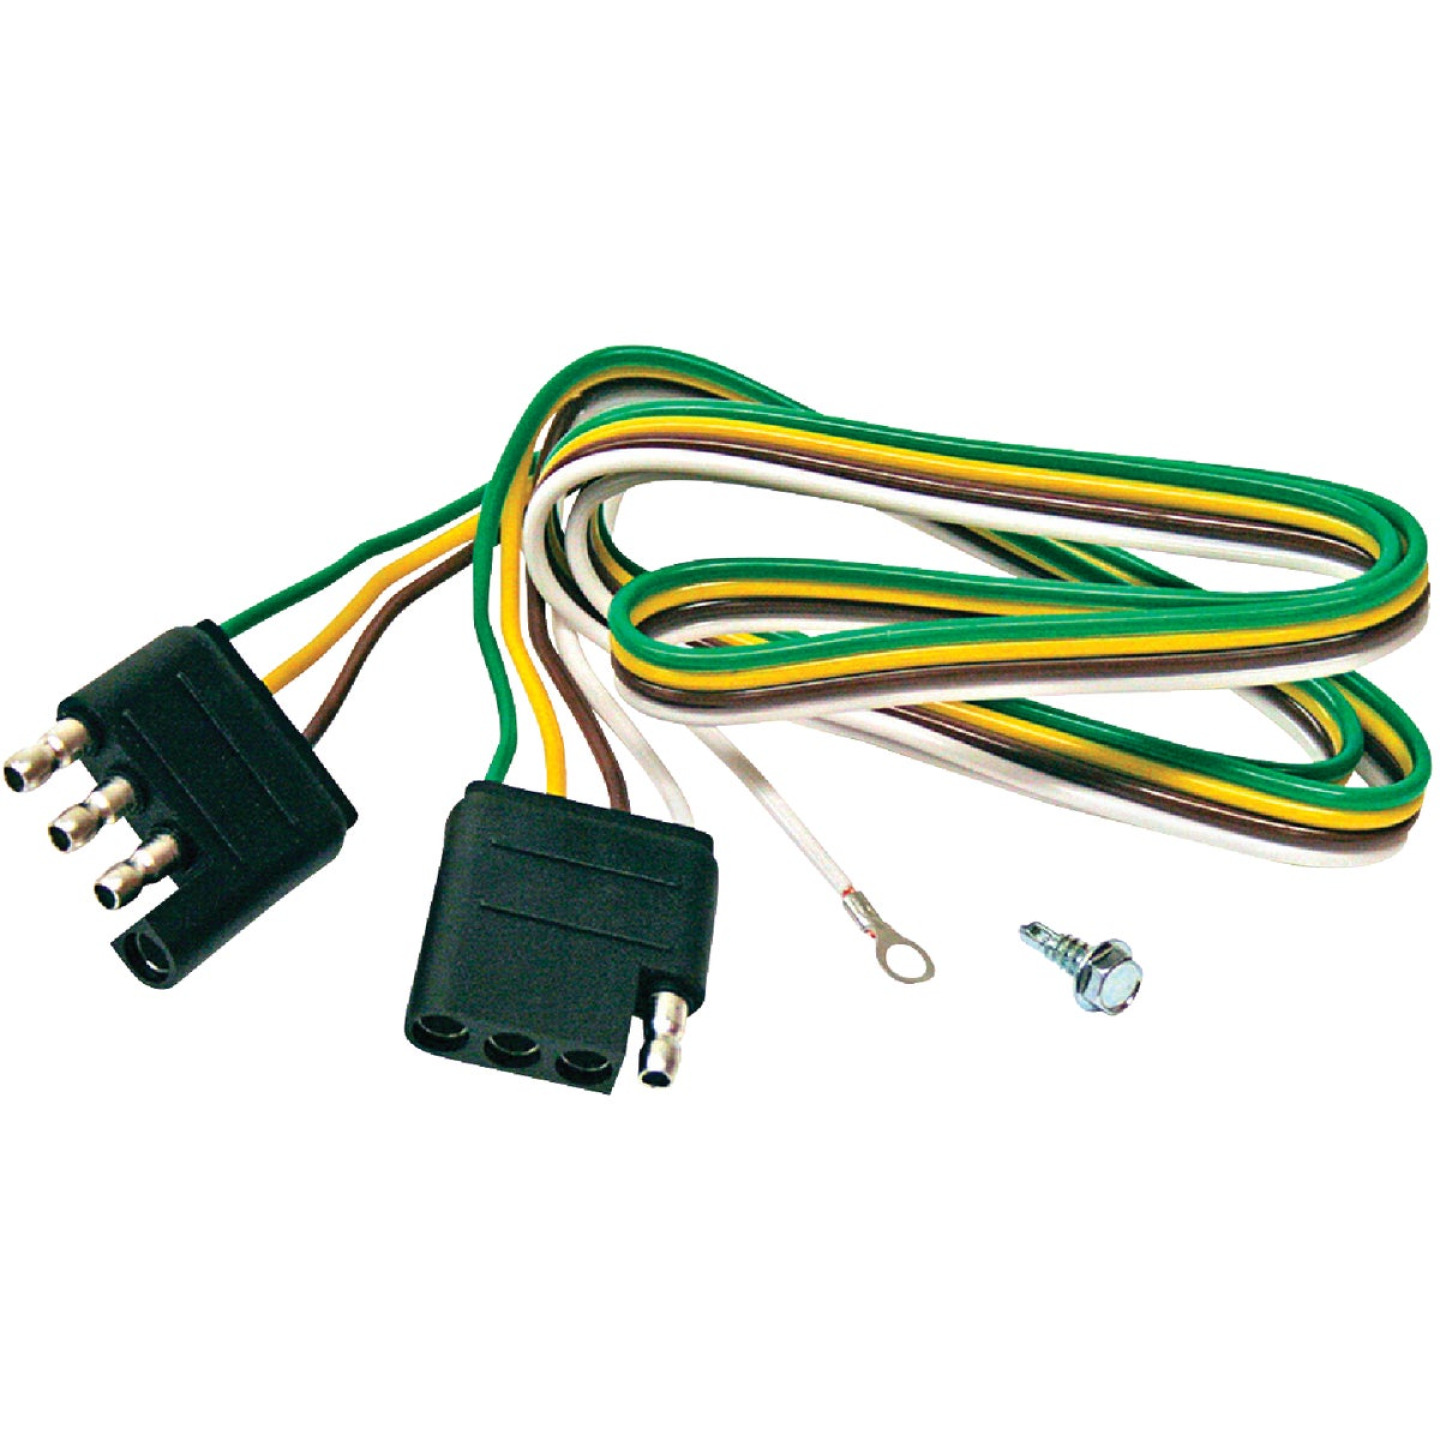 Reese Towpower 4-Flat 36 In. Loop with Ground Eyelet Vehicle/Trailer Connector Set Image 1